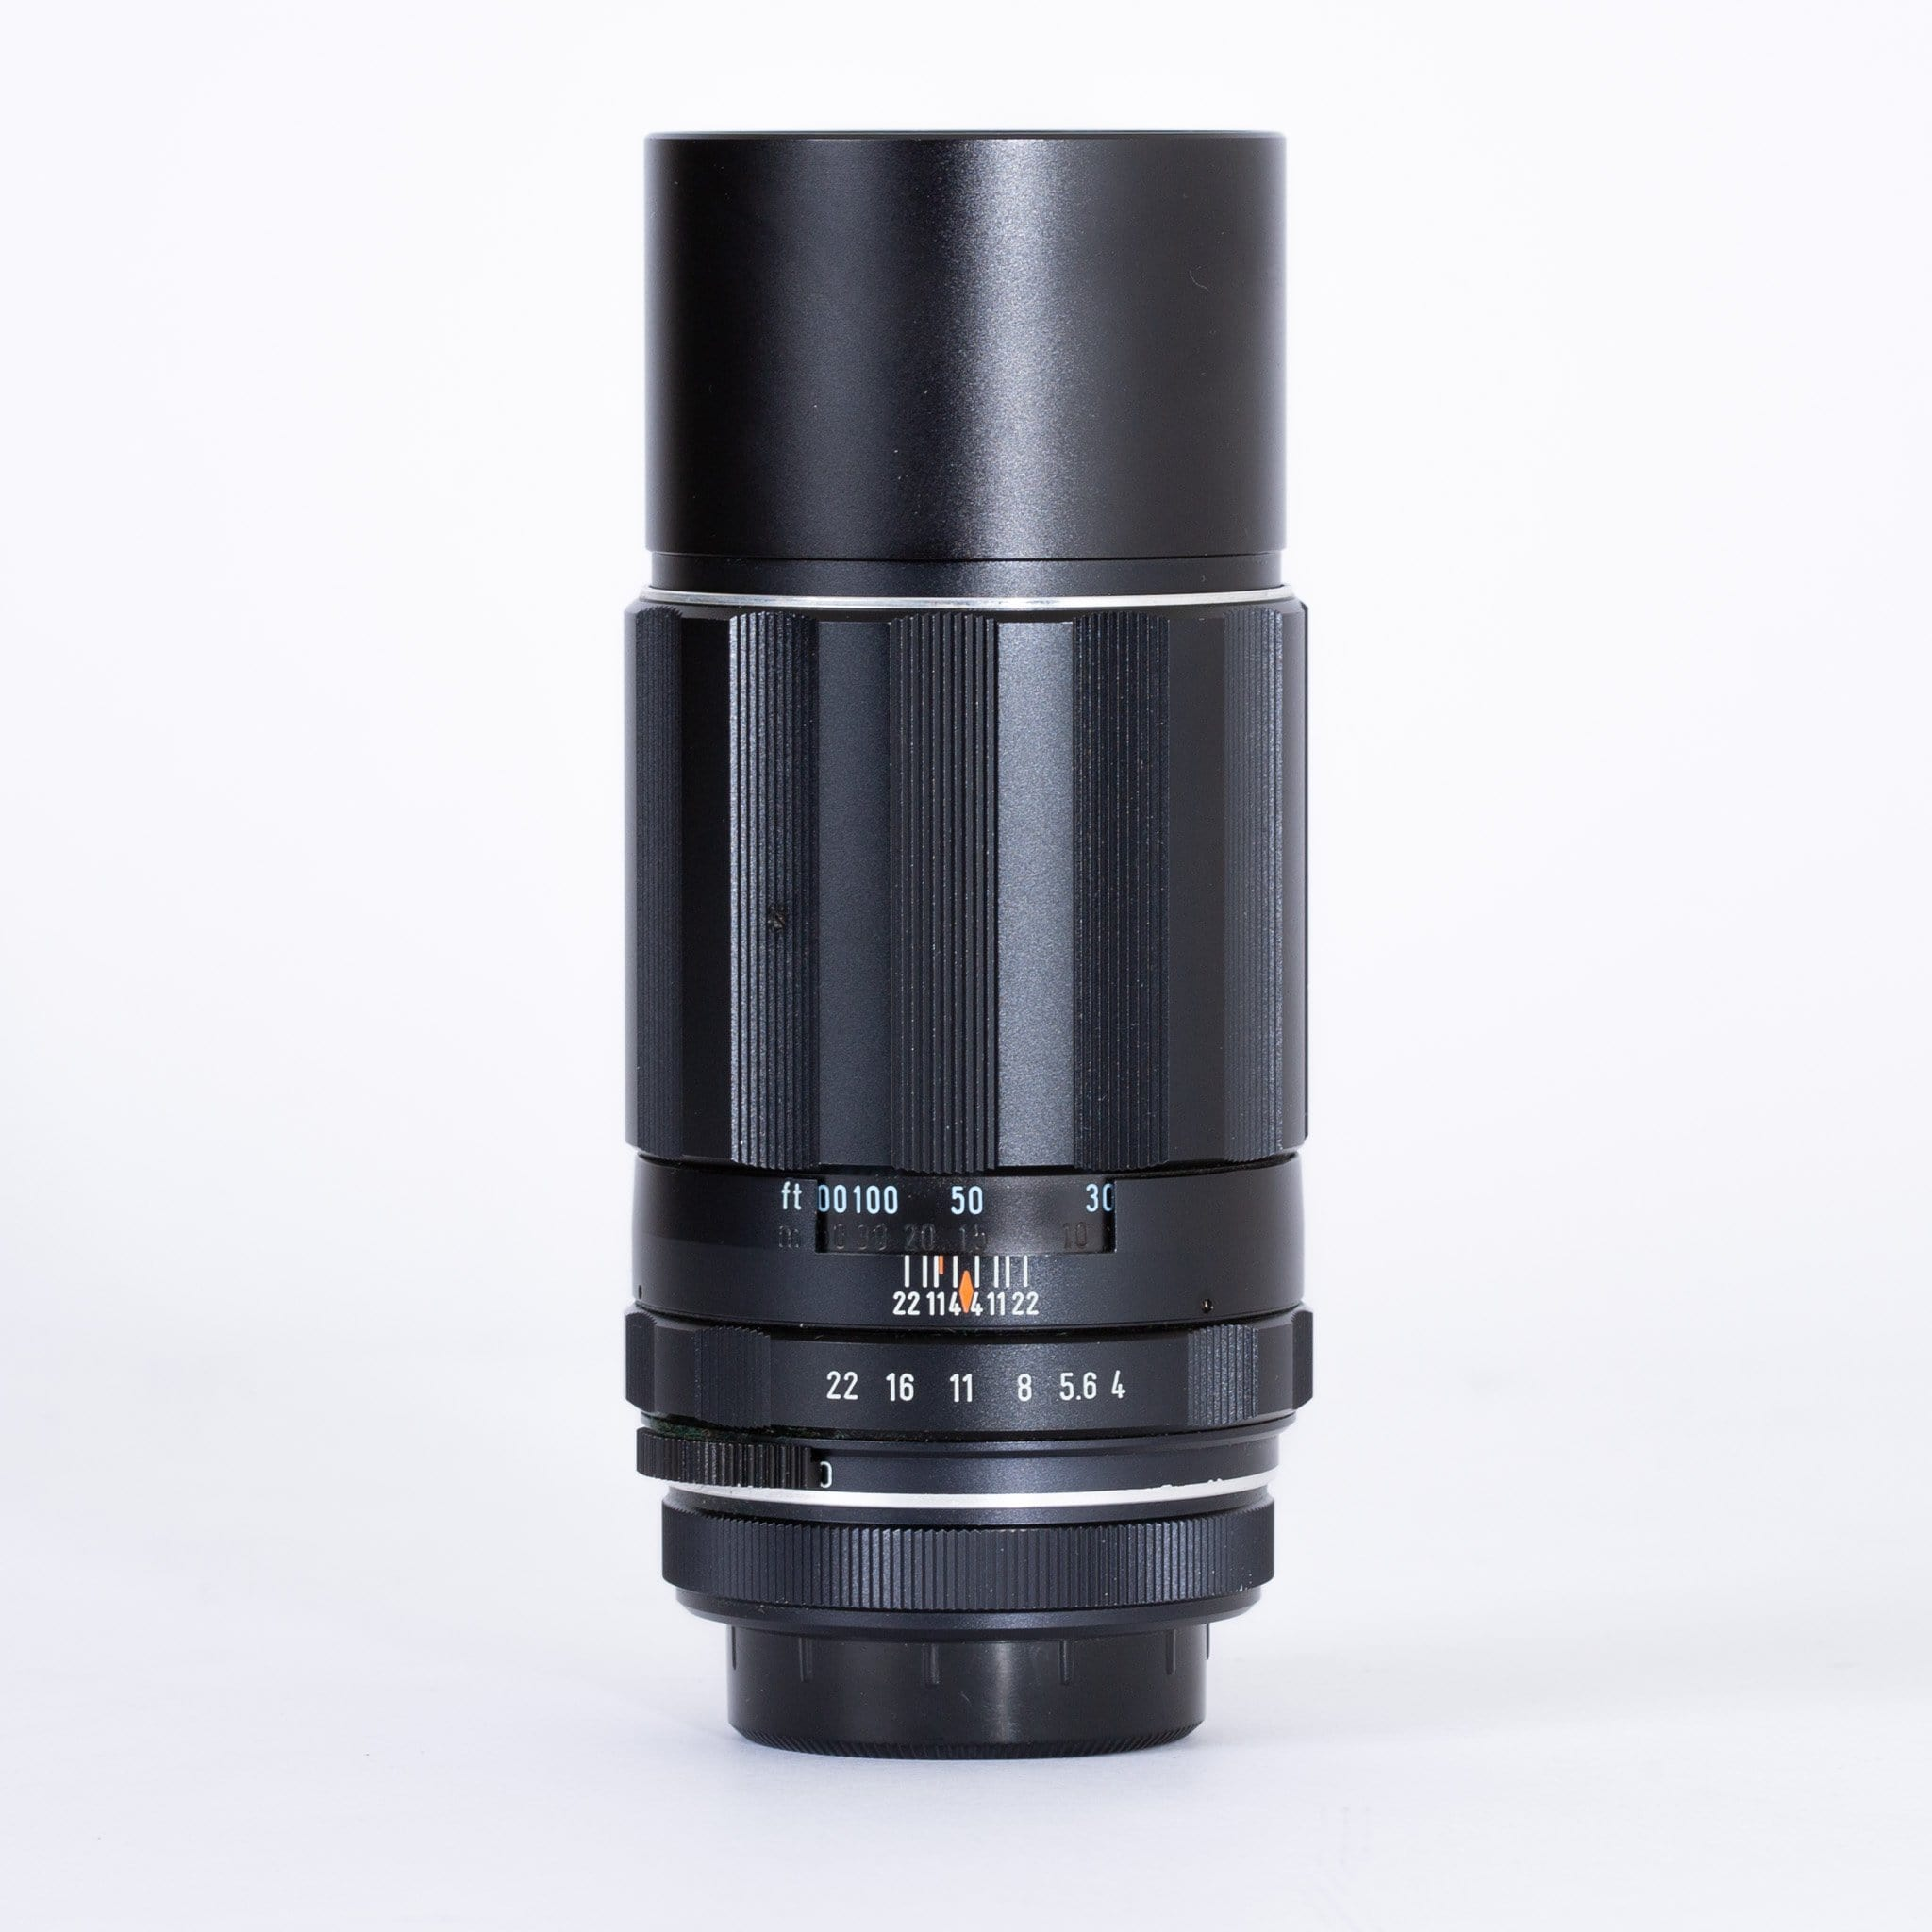 Pentax Super Takumar 200mm f/4 Lens for Pentax Screw Mount